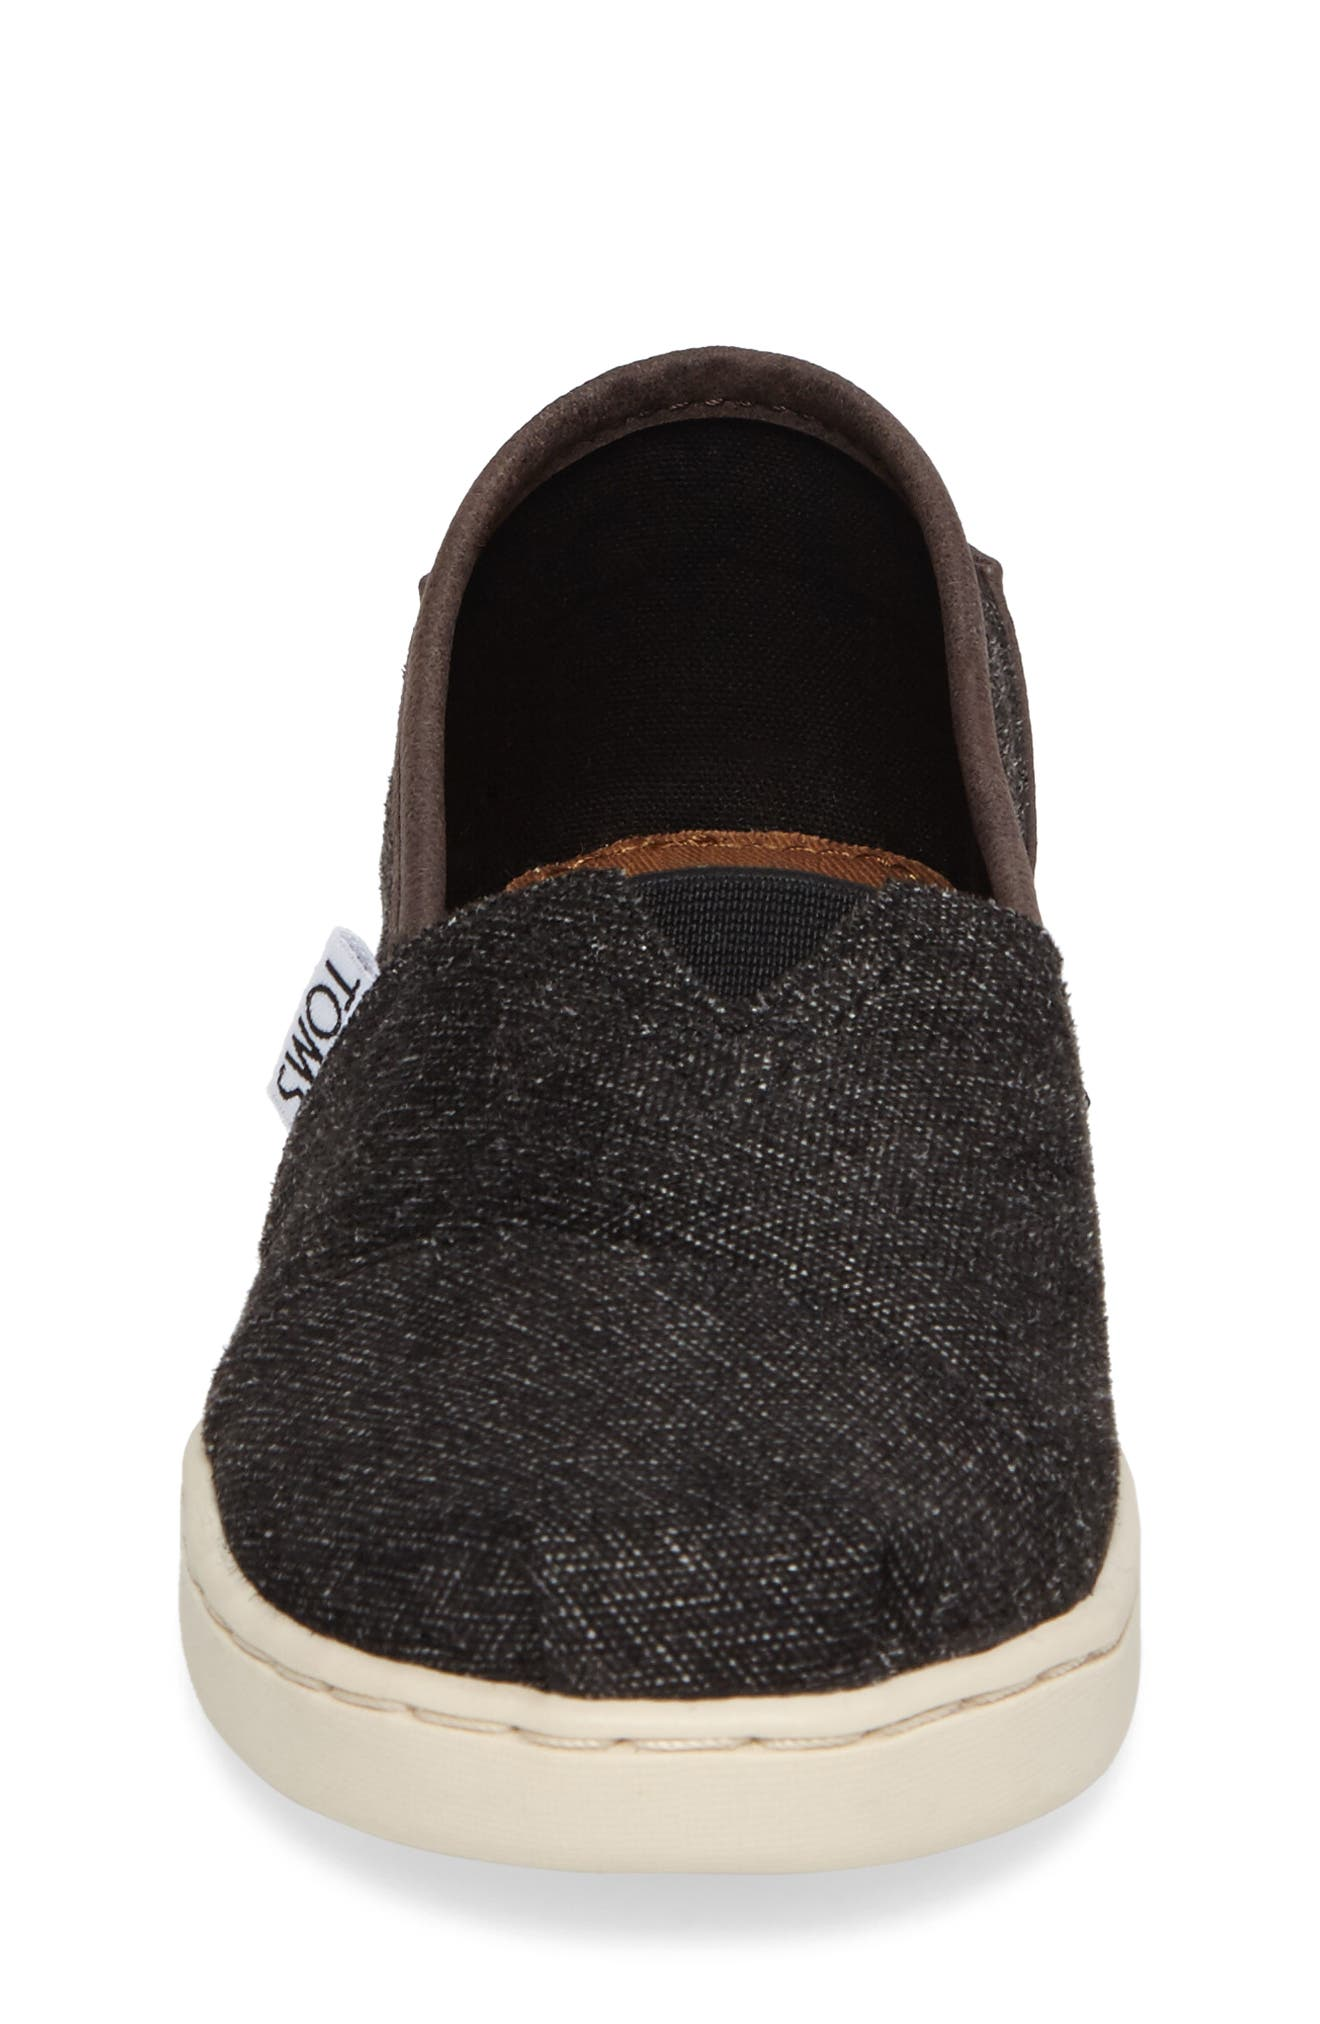 Alternate Image 4  - TOMS Herringbone Slip-On Sneaker (Toddler, Little Kid & Big Kid)